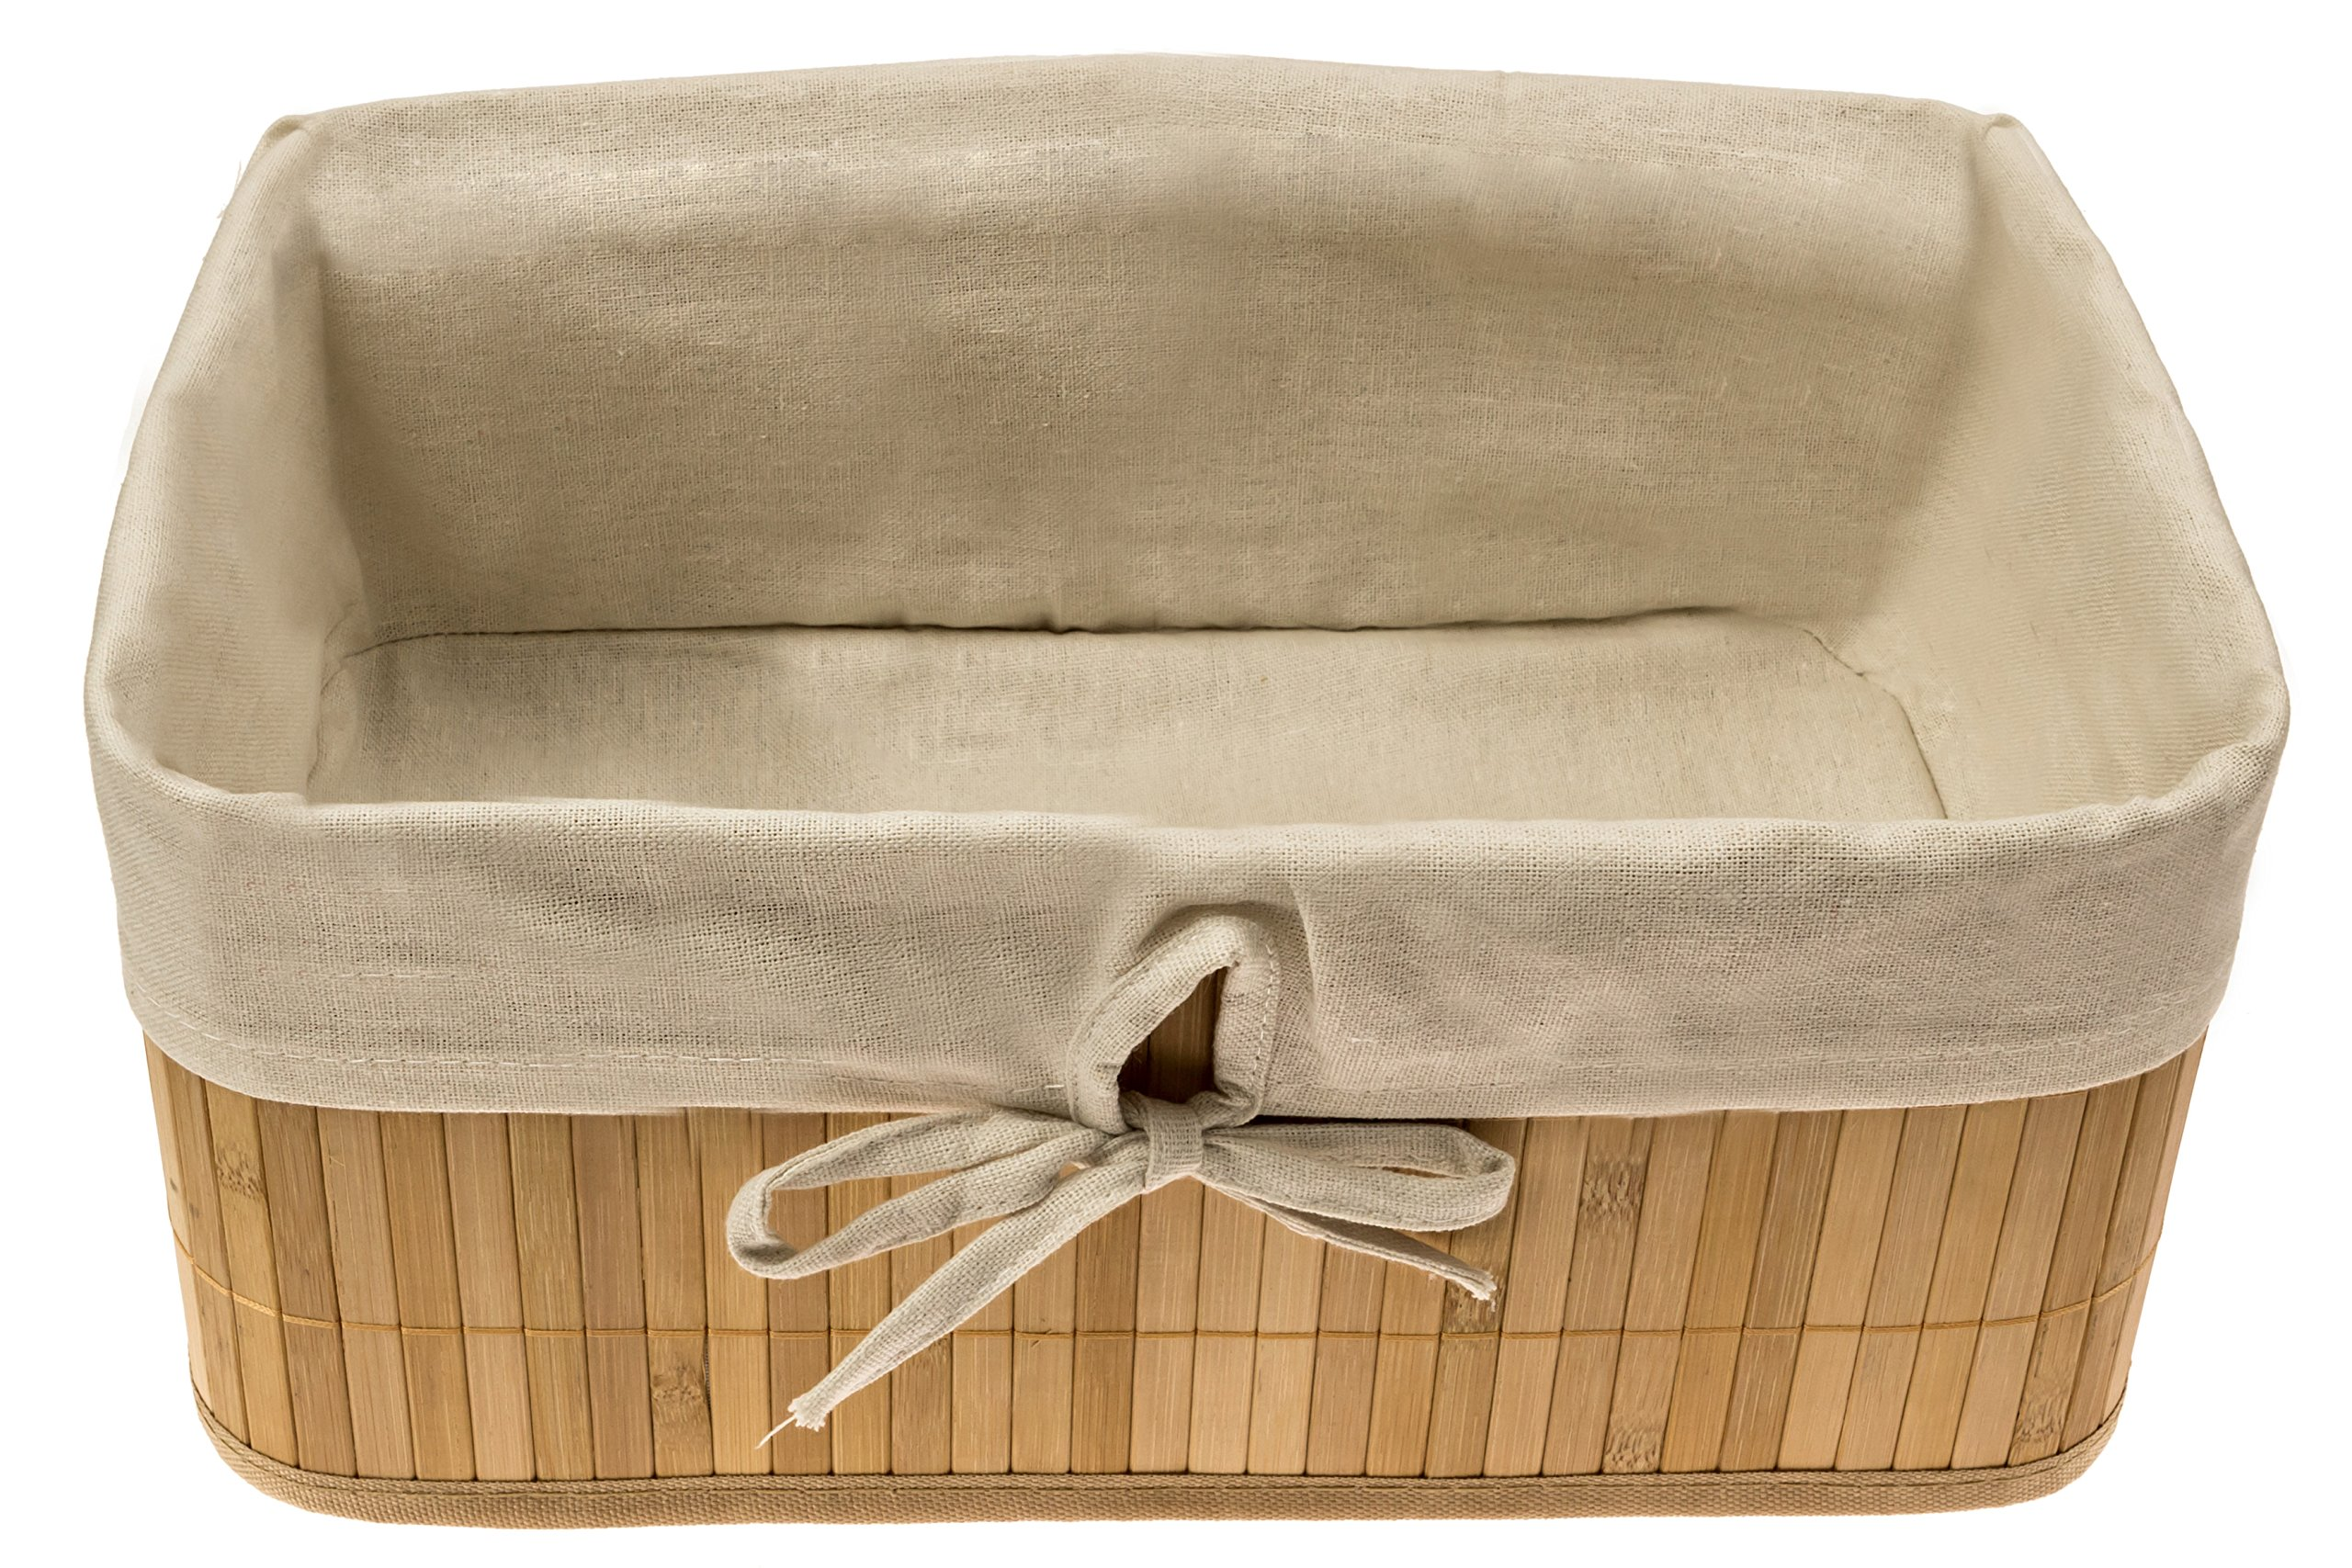 """Naked Bamboo"" Home Storage Basket 